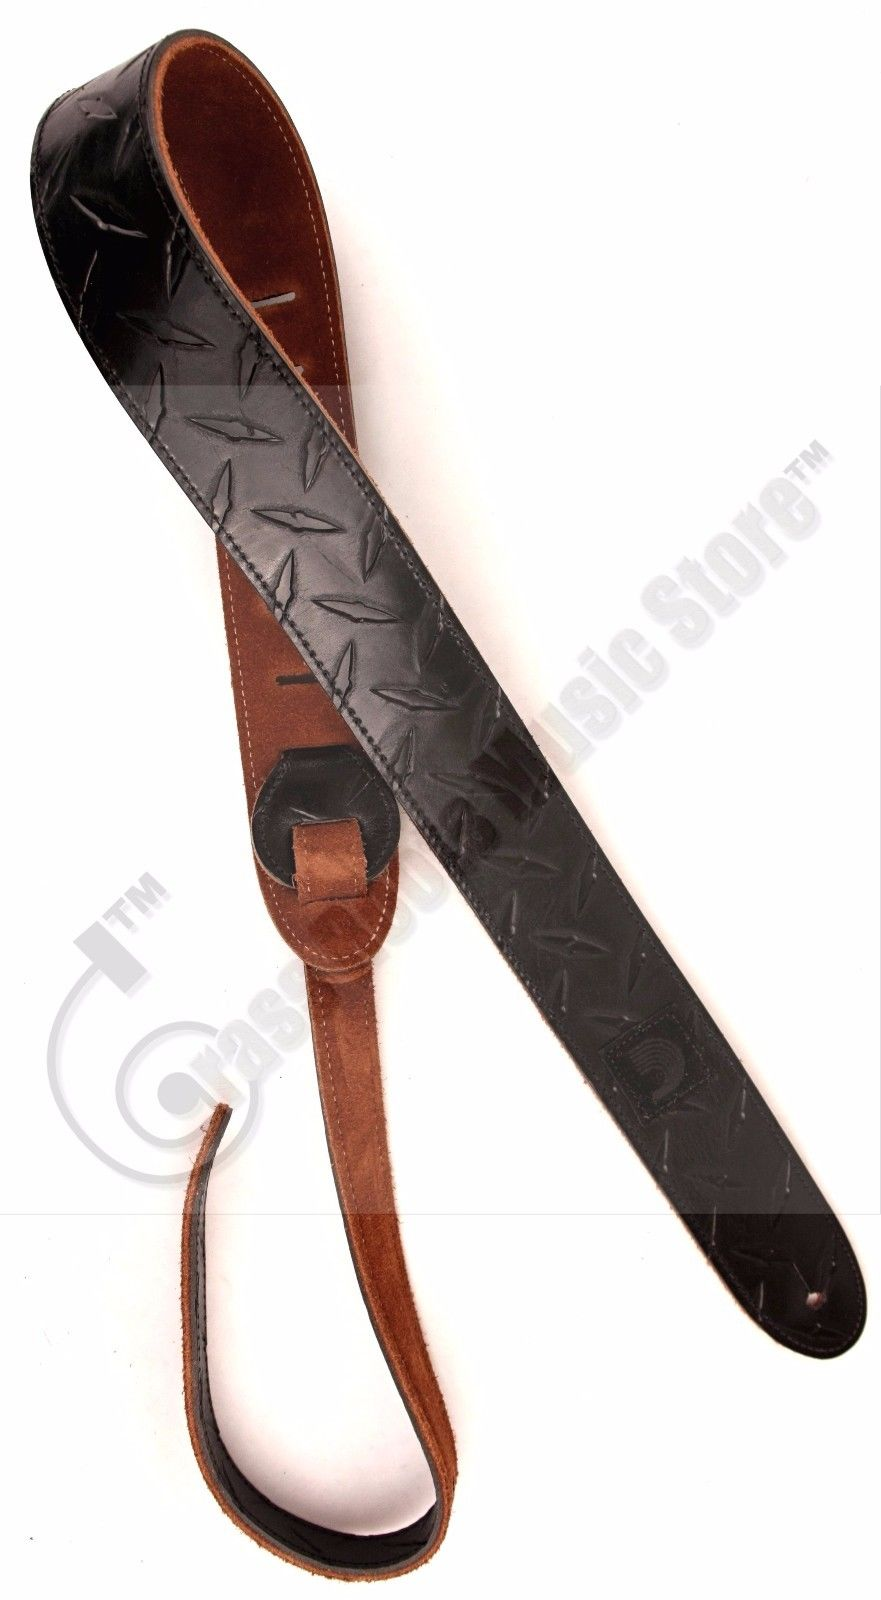 "D'Addario PLANET WAVES Diamond Plate Embossed Leather Guitar Strap 2"" - Black"